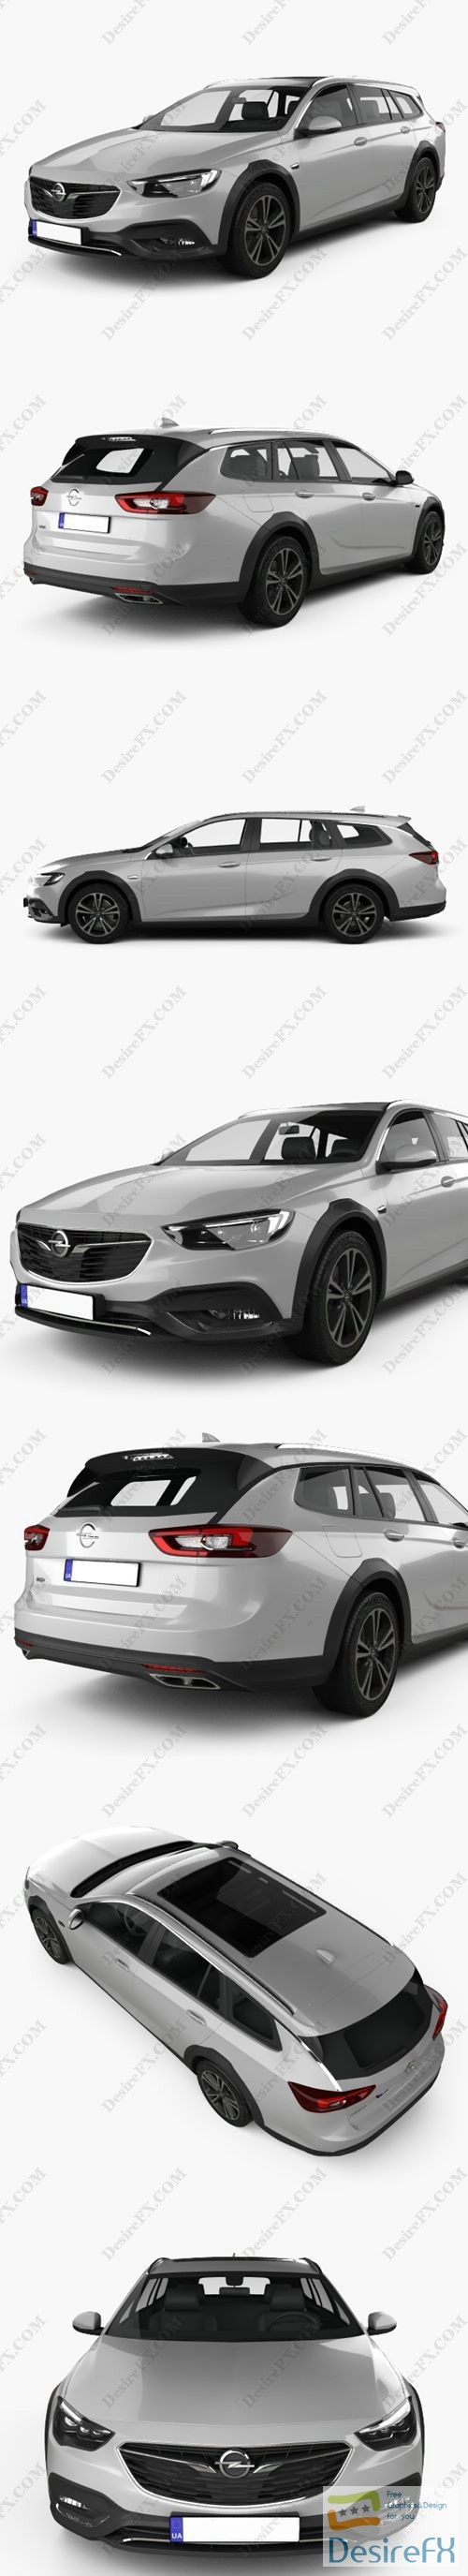 3d-models - Opel Insignia Country Tourer 2017 3D Model